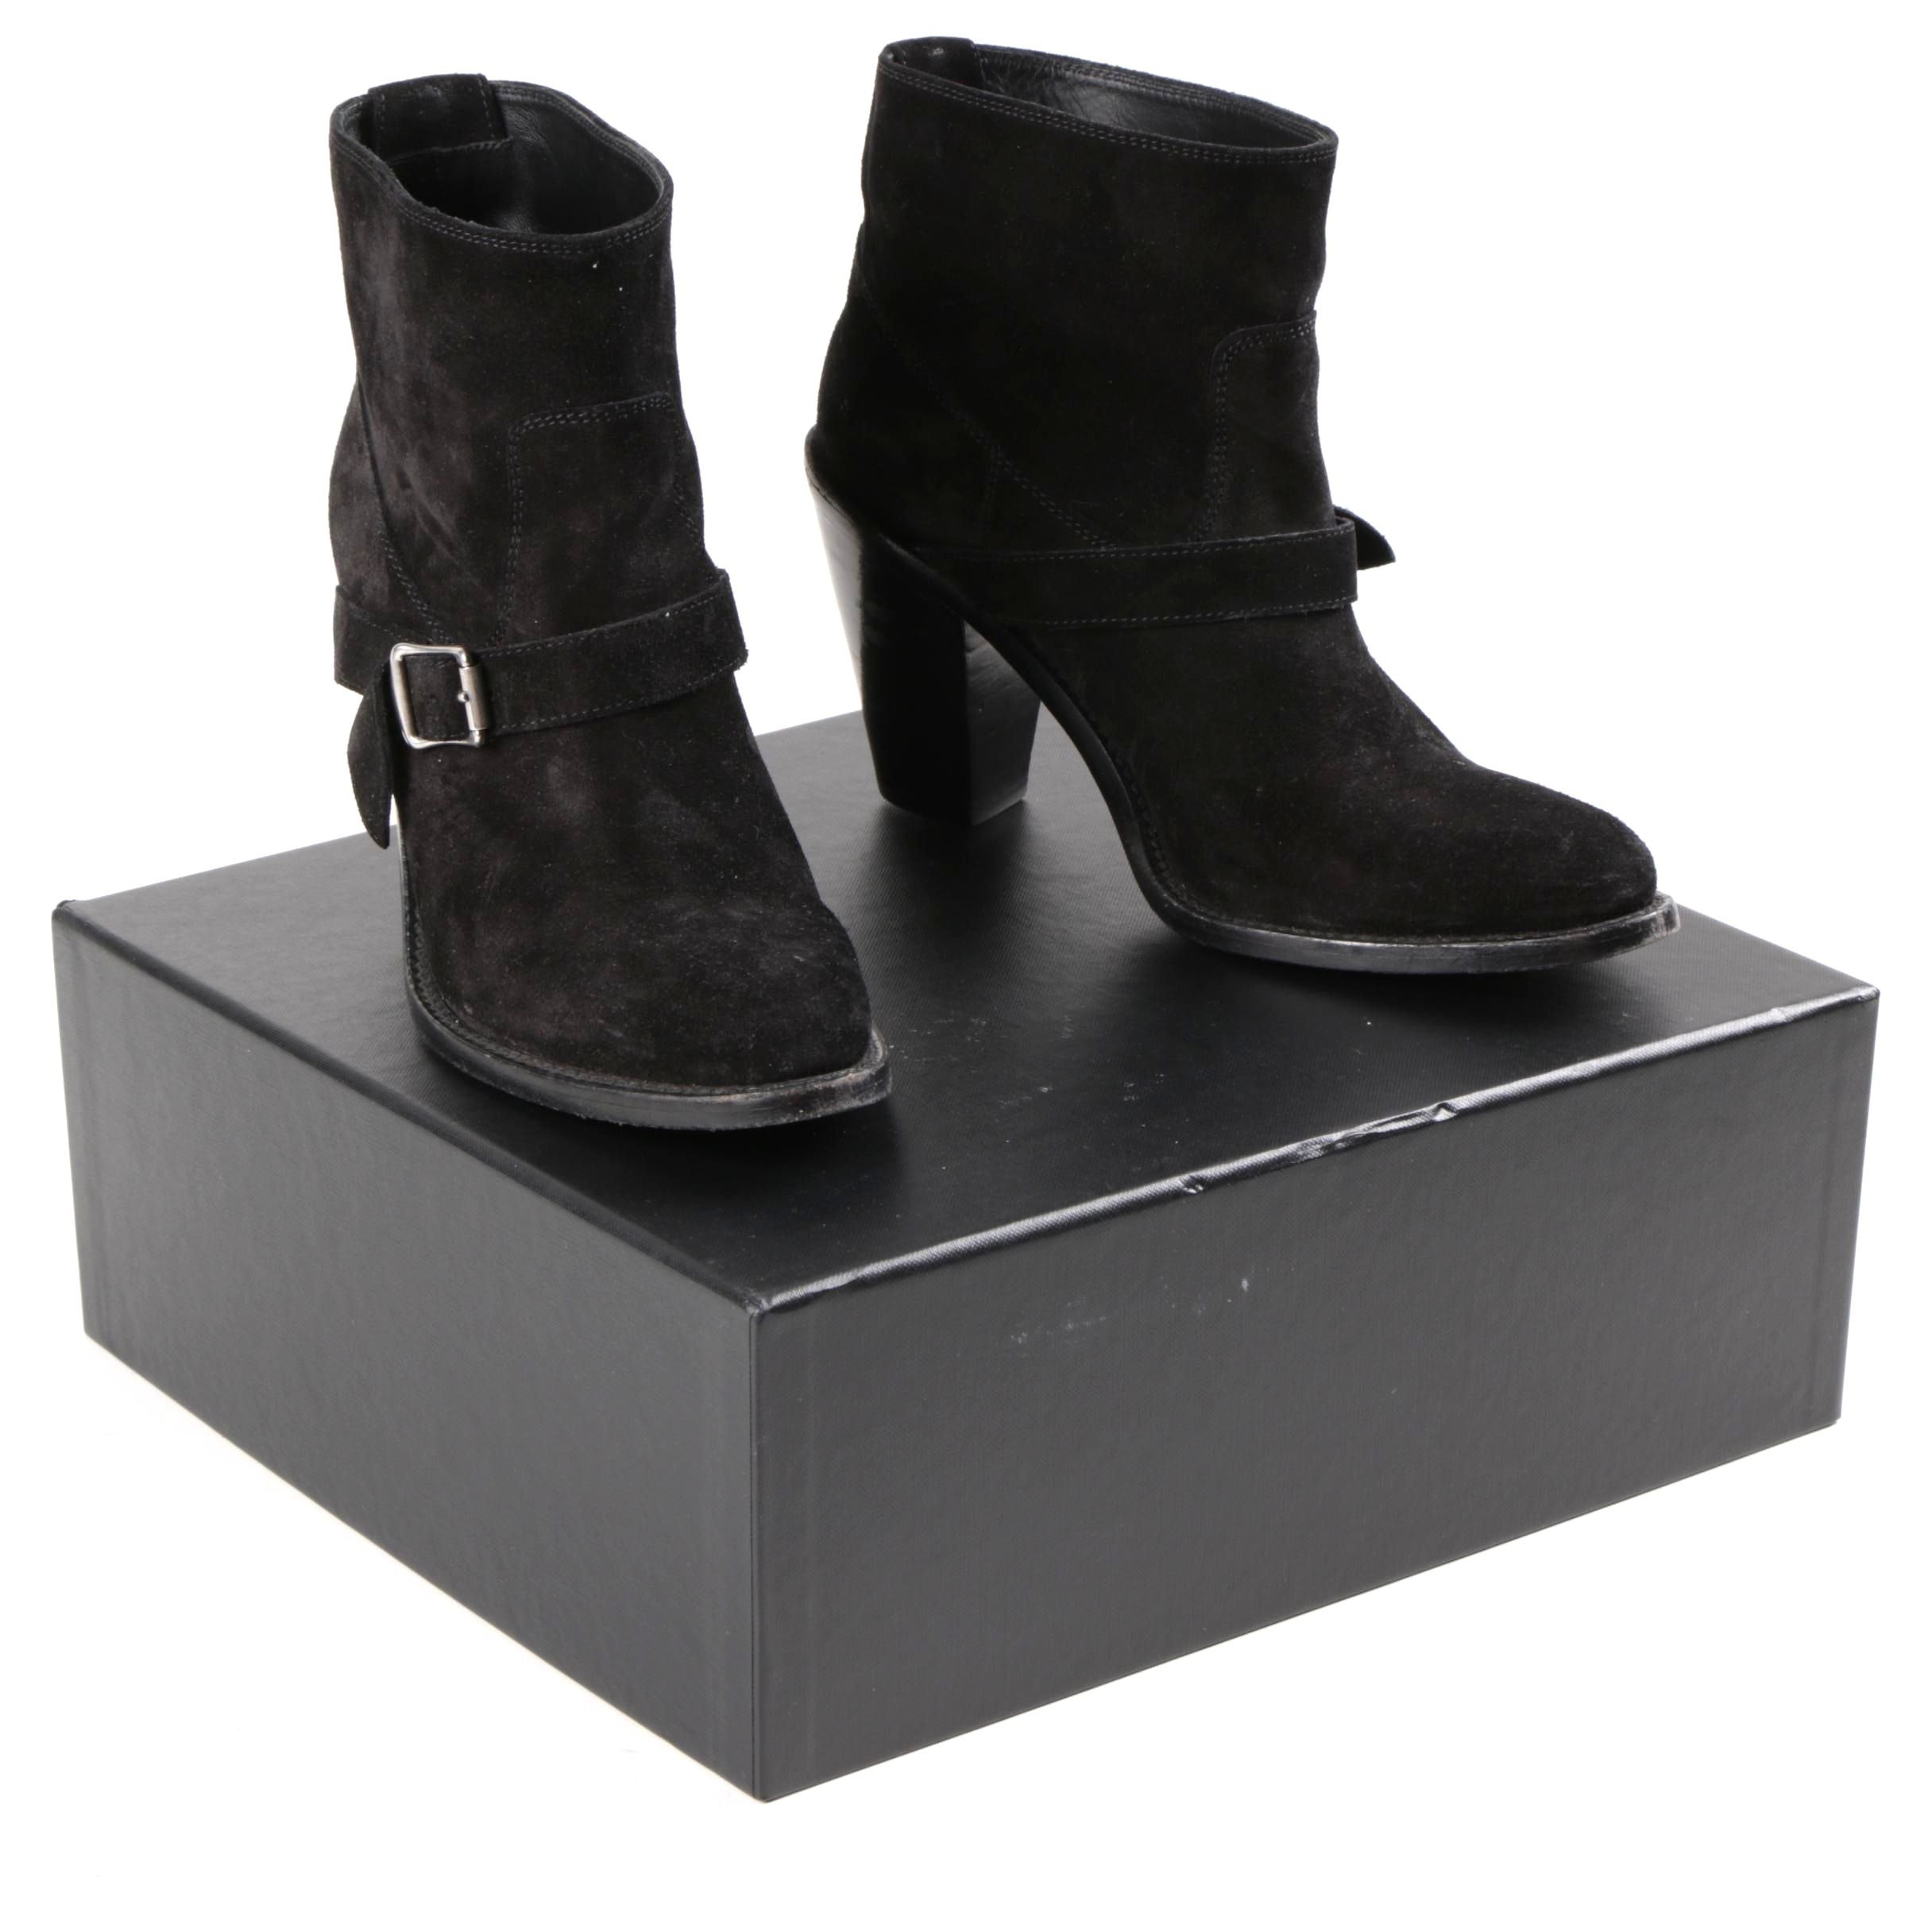 Black Suede Chunky Heel Boots by Saint Laurent